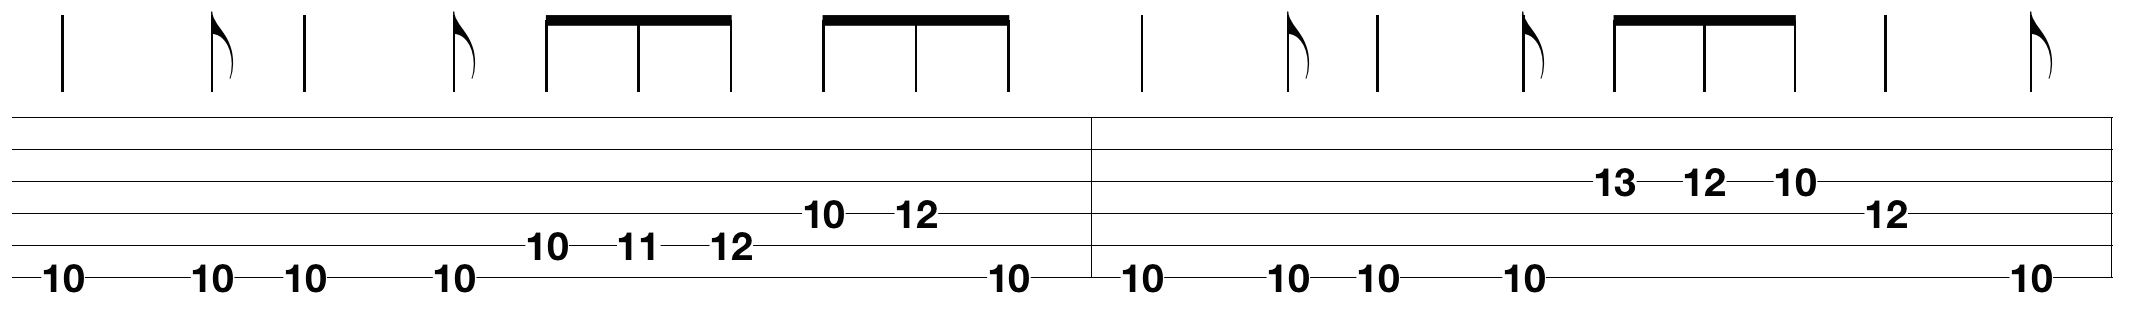 blues-guitar-scales-tabs_2.png